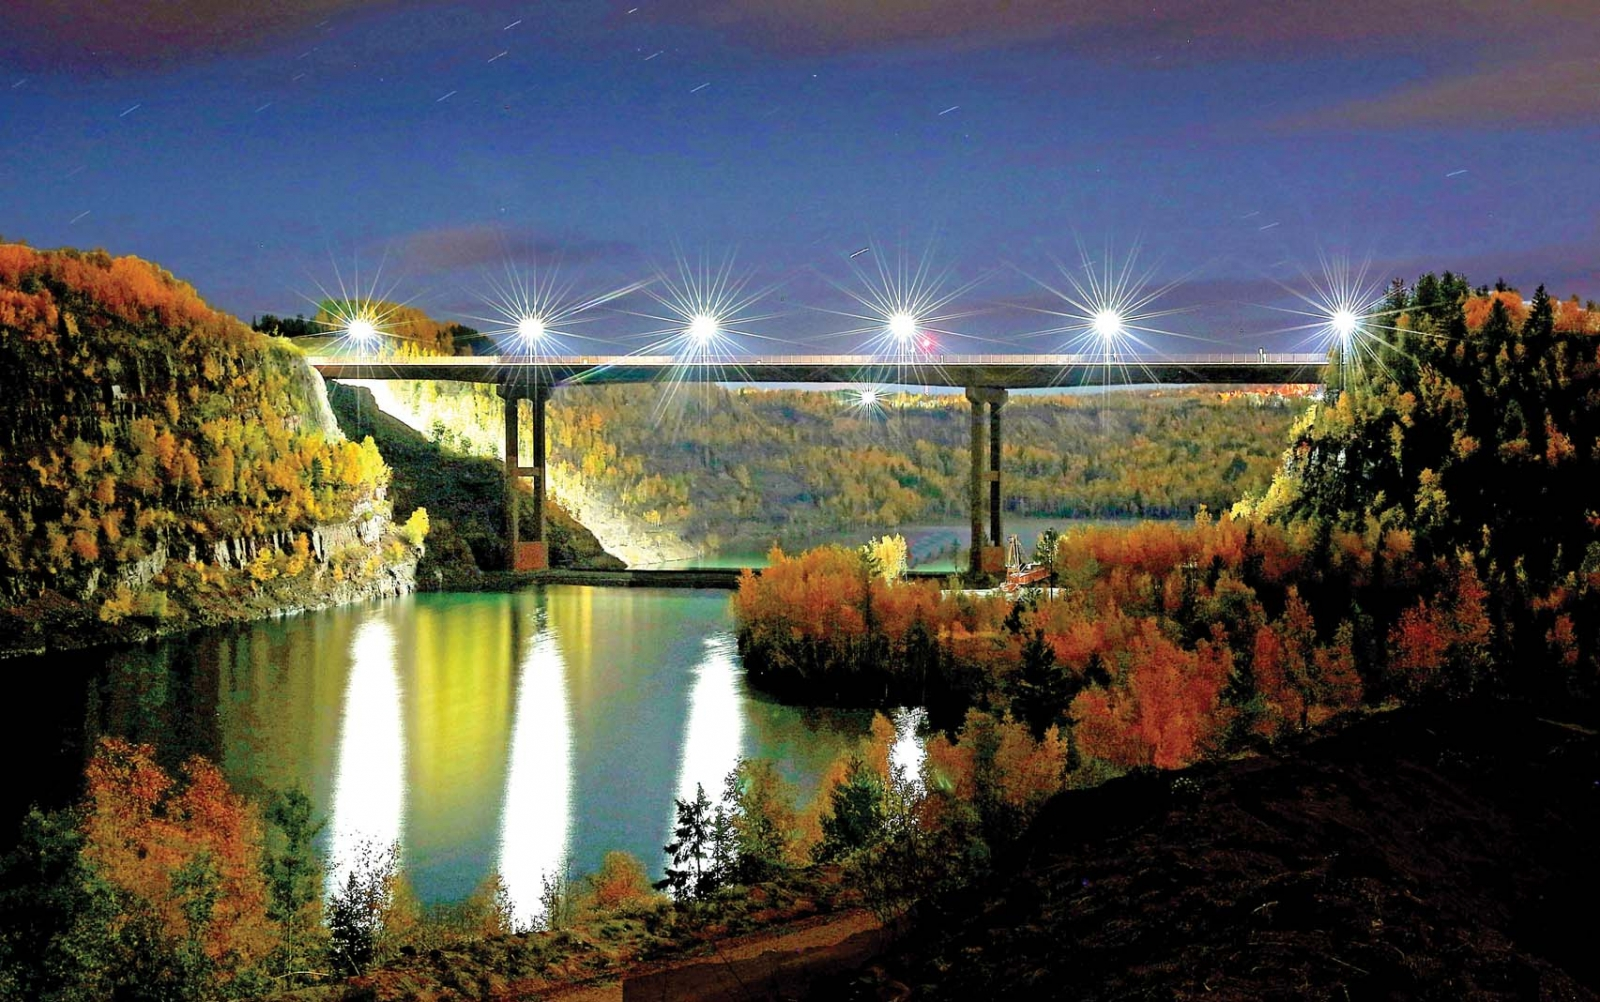 The bridge between Eveleth and Virginia, Minnesota.